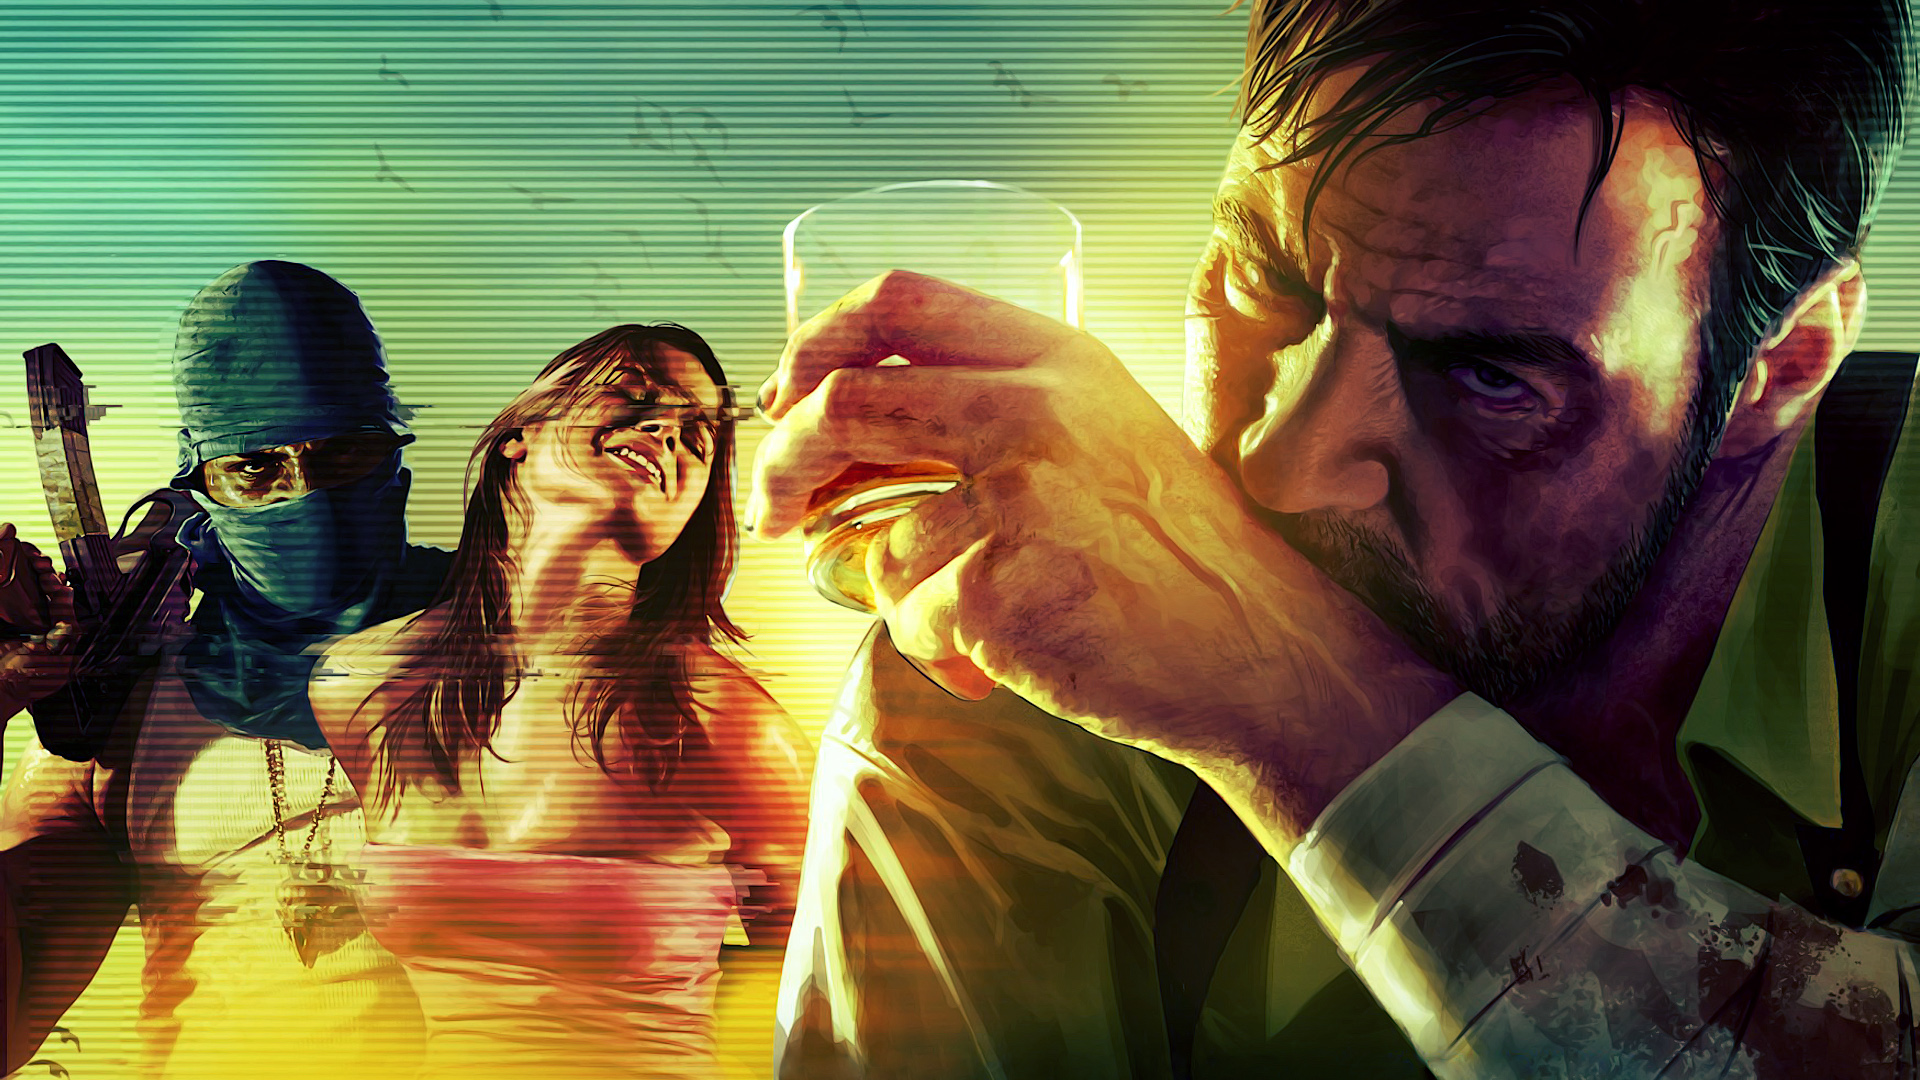 Max Payne 3 Wallpapers in HD 1920x1080